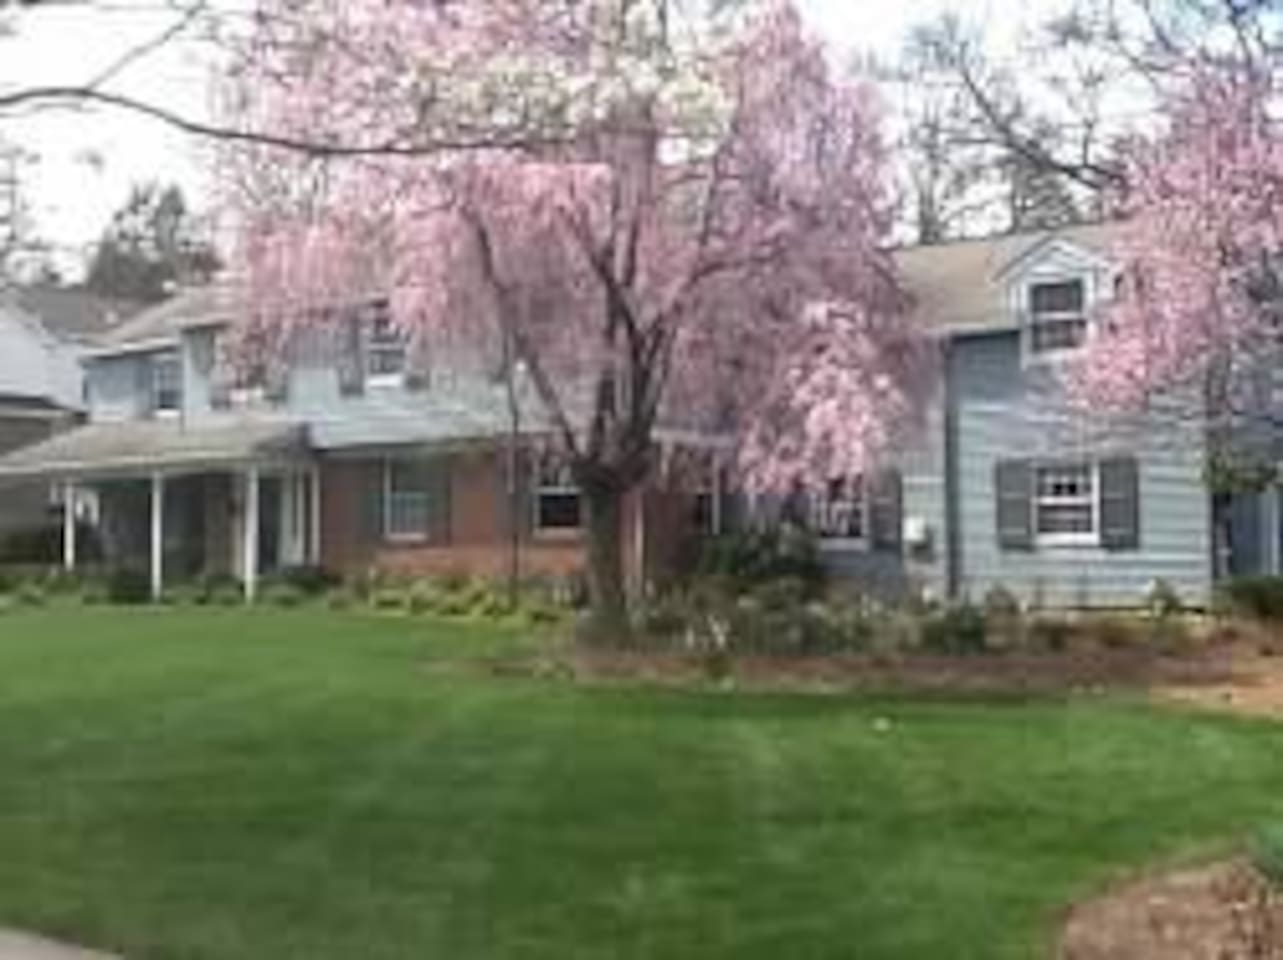 Spacious home on a very quiet street with lovely gardens